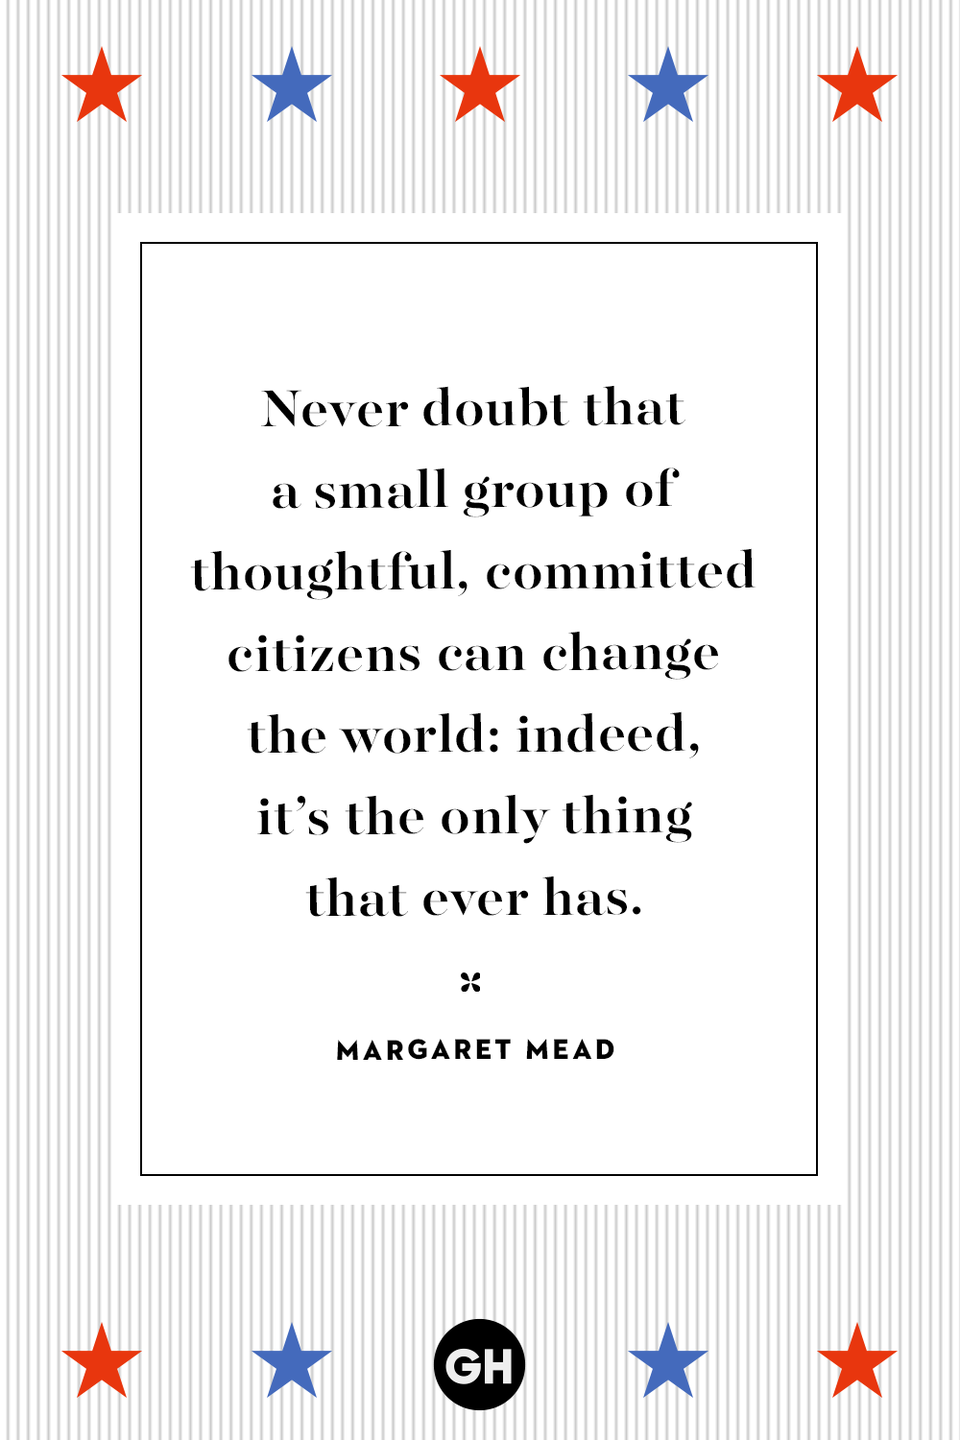 <p>Never doubt that a small group of thoughtful, committed citizens can change the world: indeed, it's the only thing that ever has.</p>